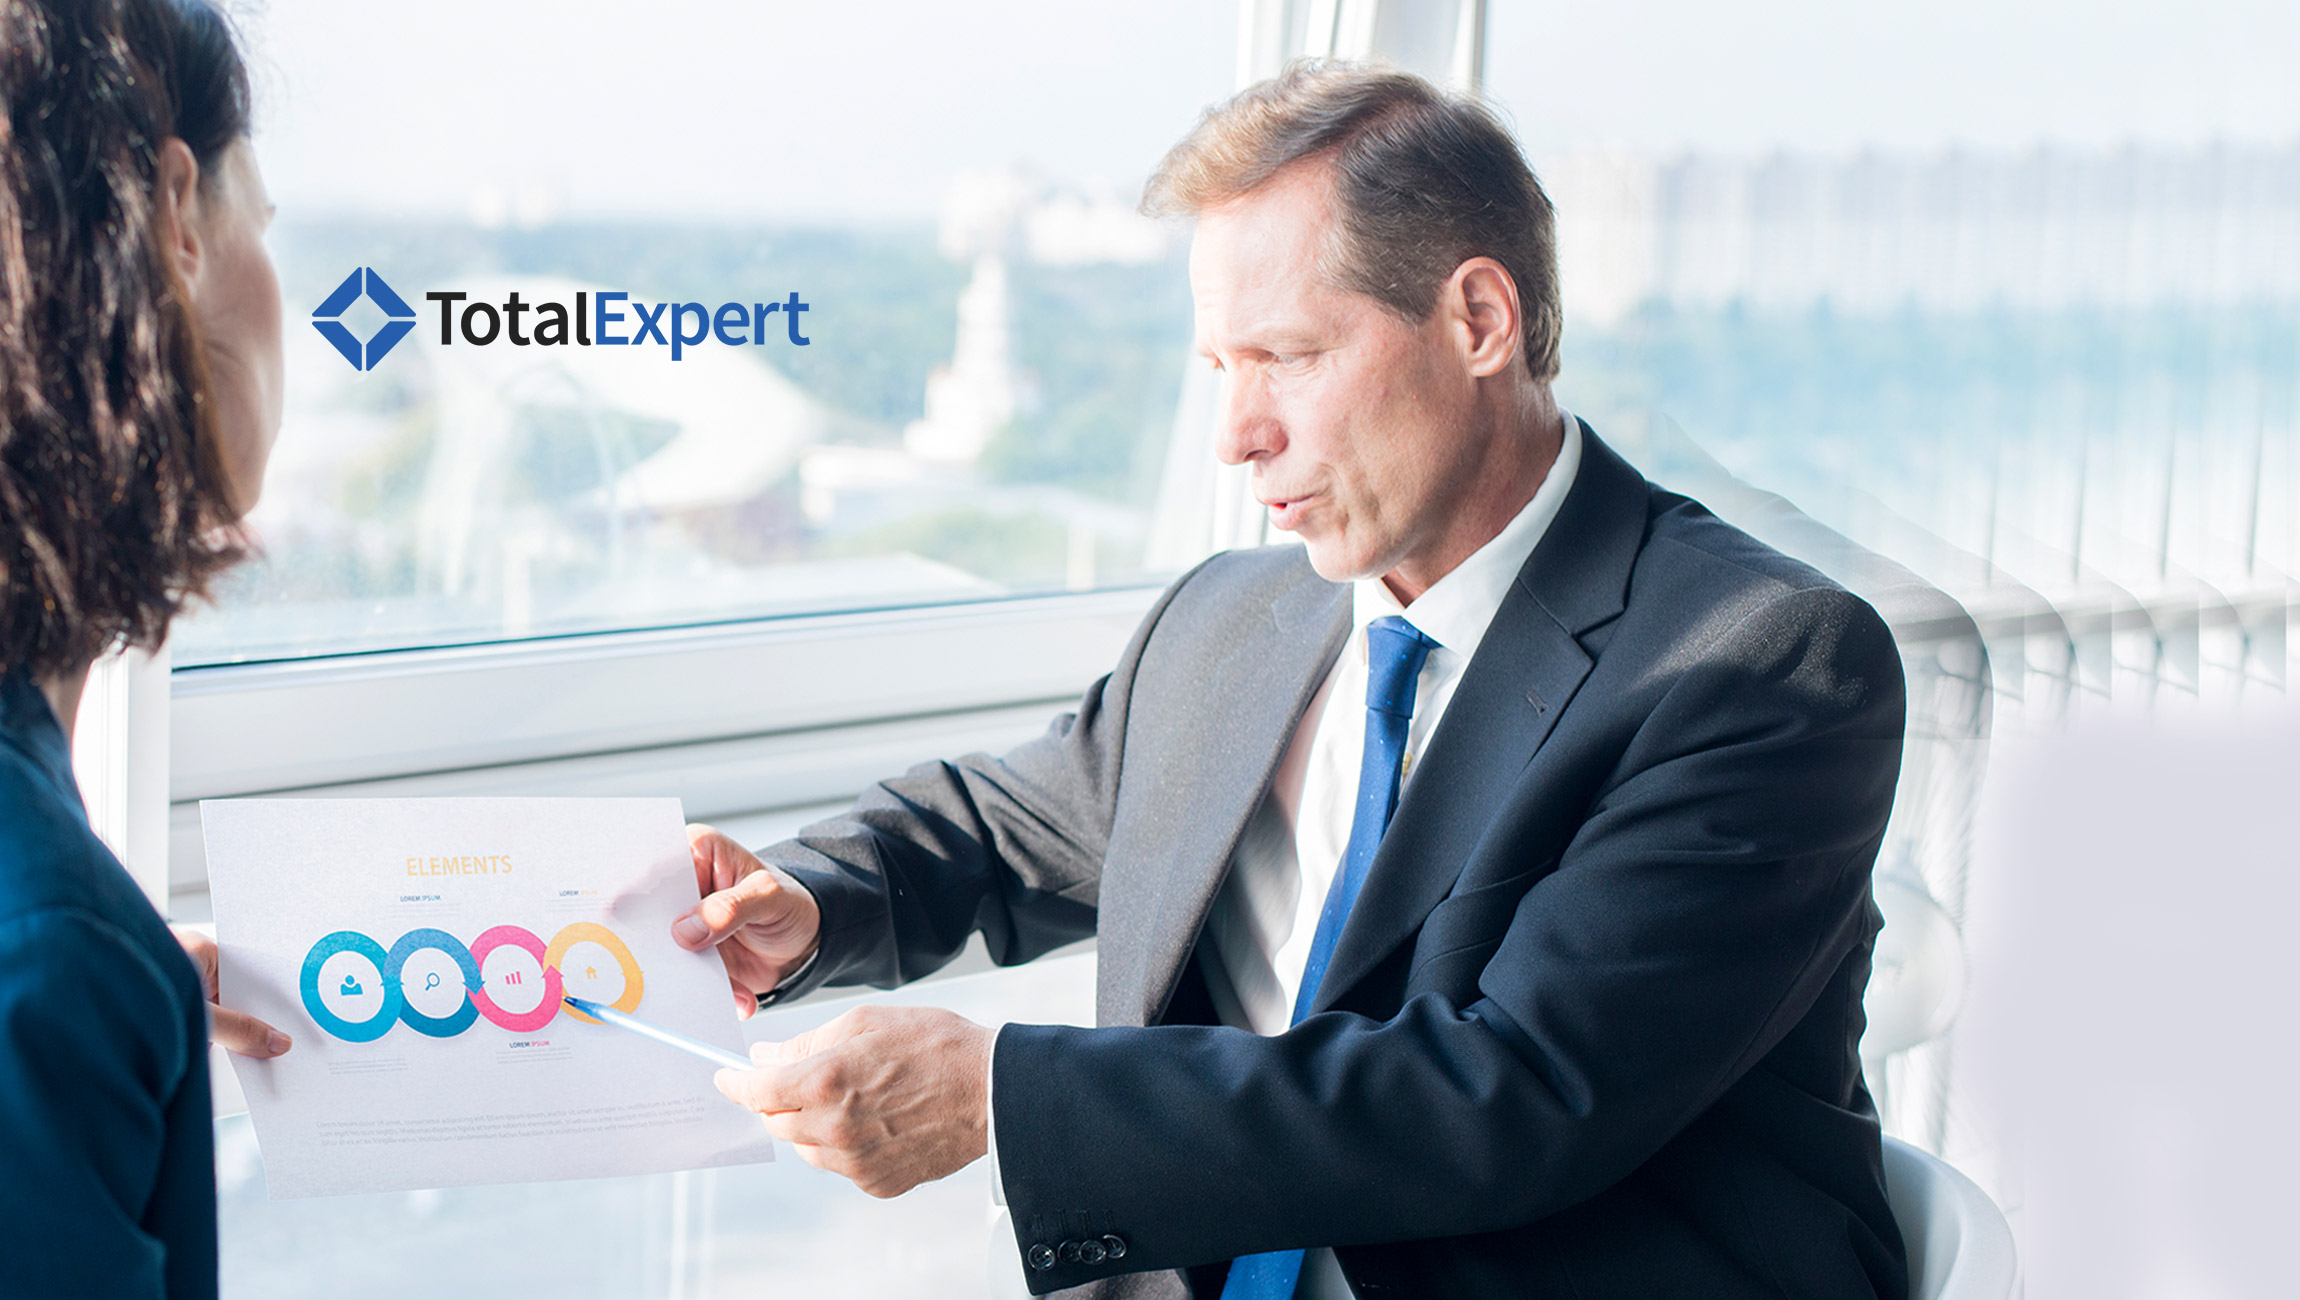 Total Expert Launches Platform Capabilities to Drive Authentic Customer Relationships